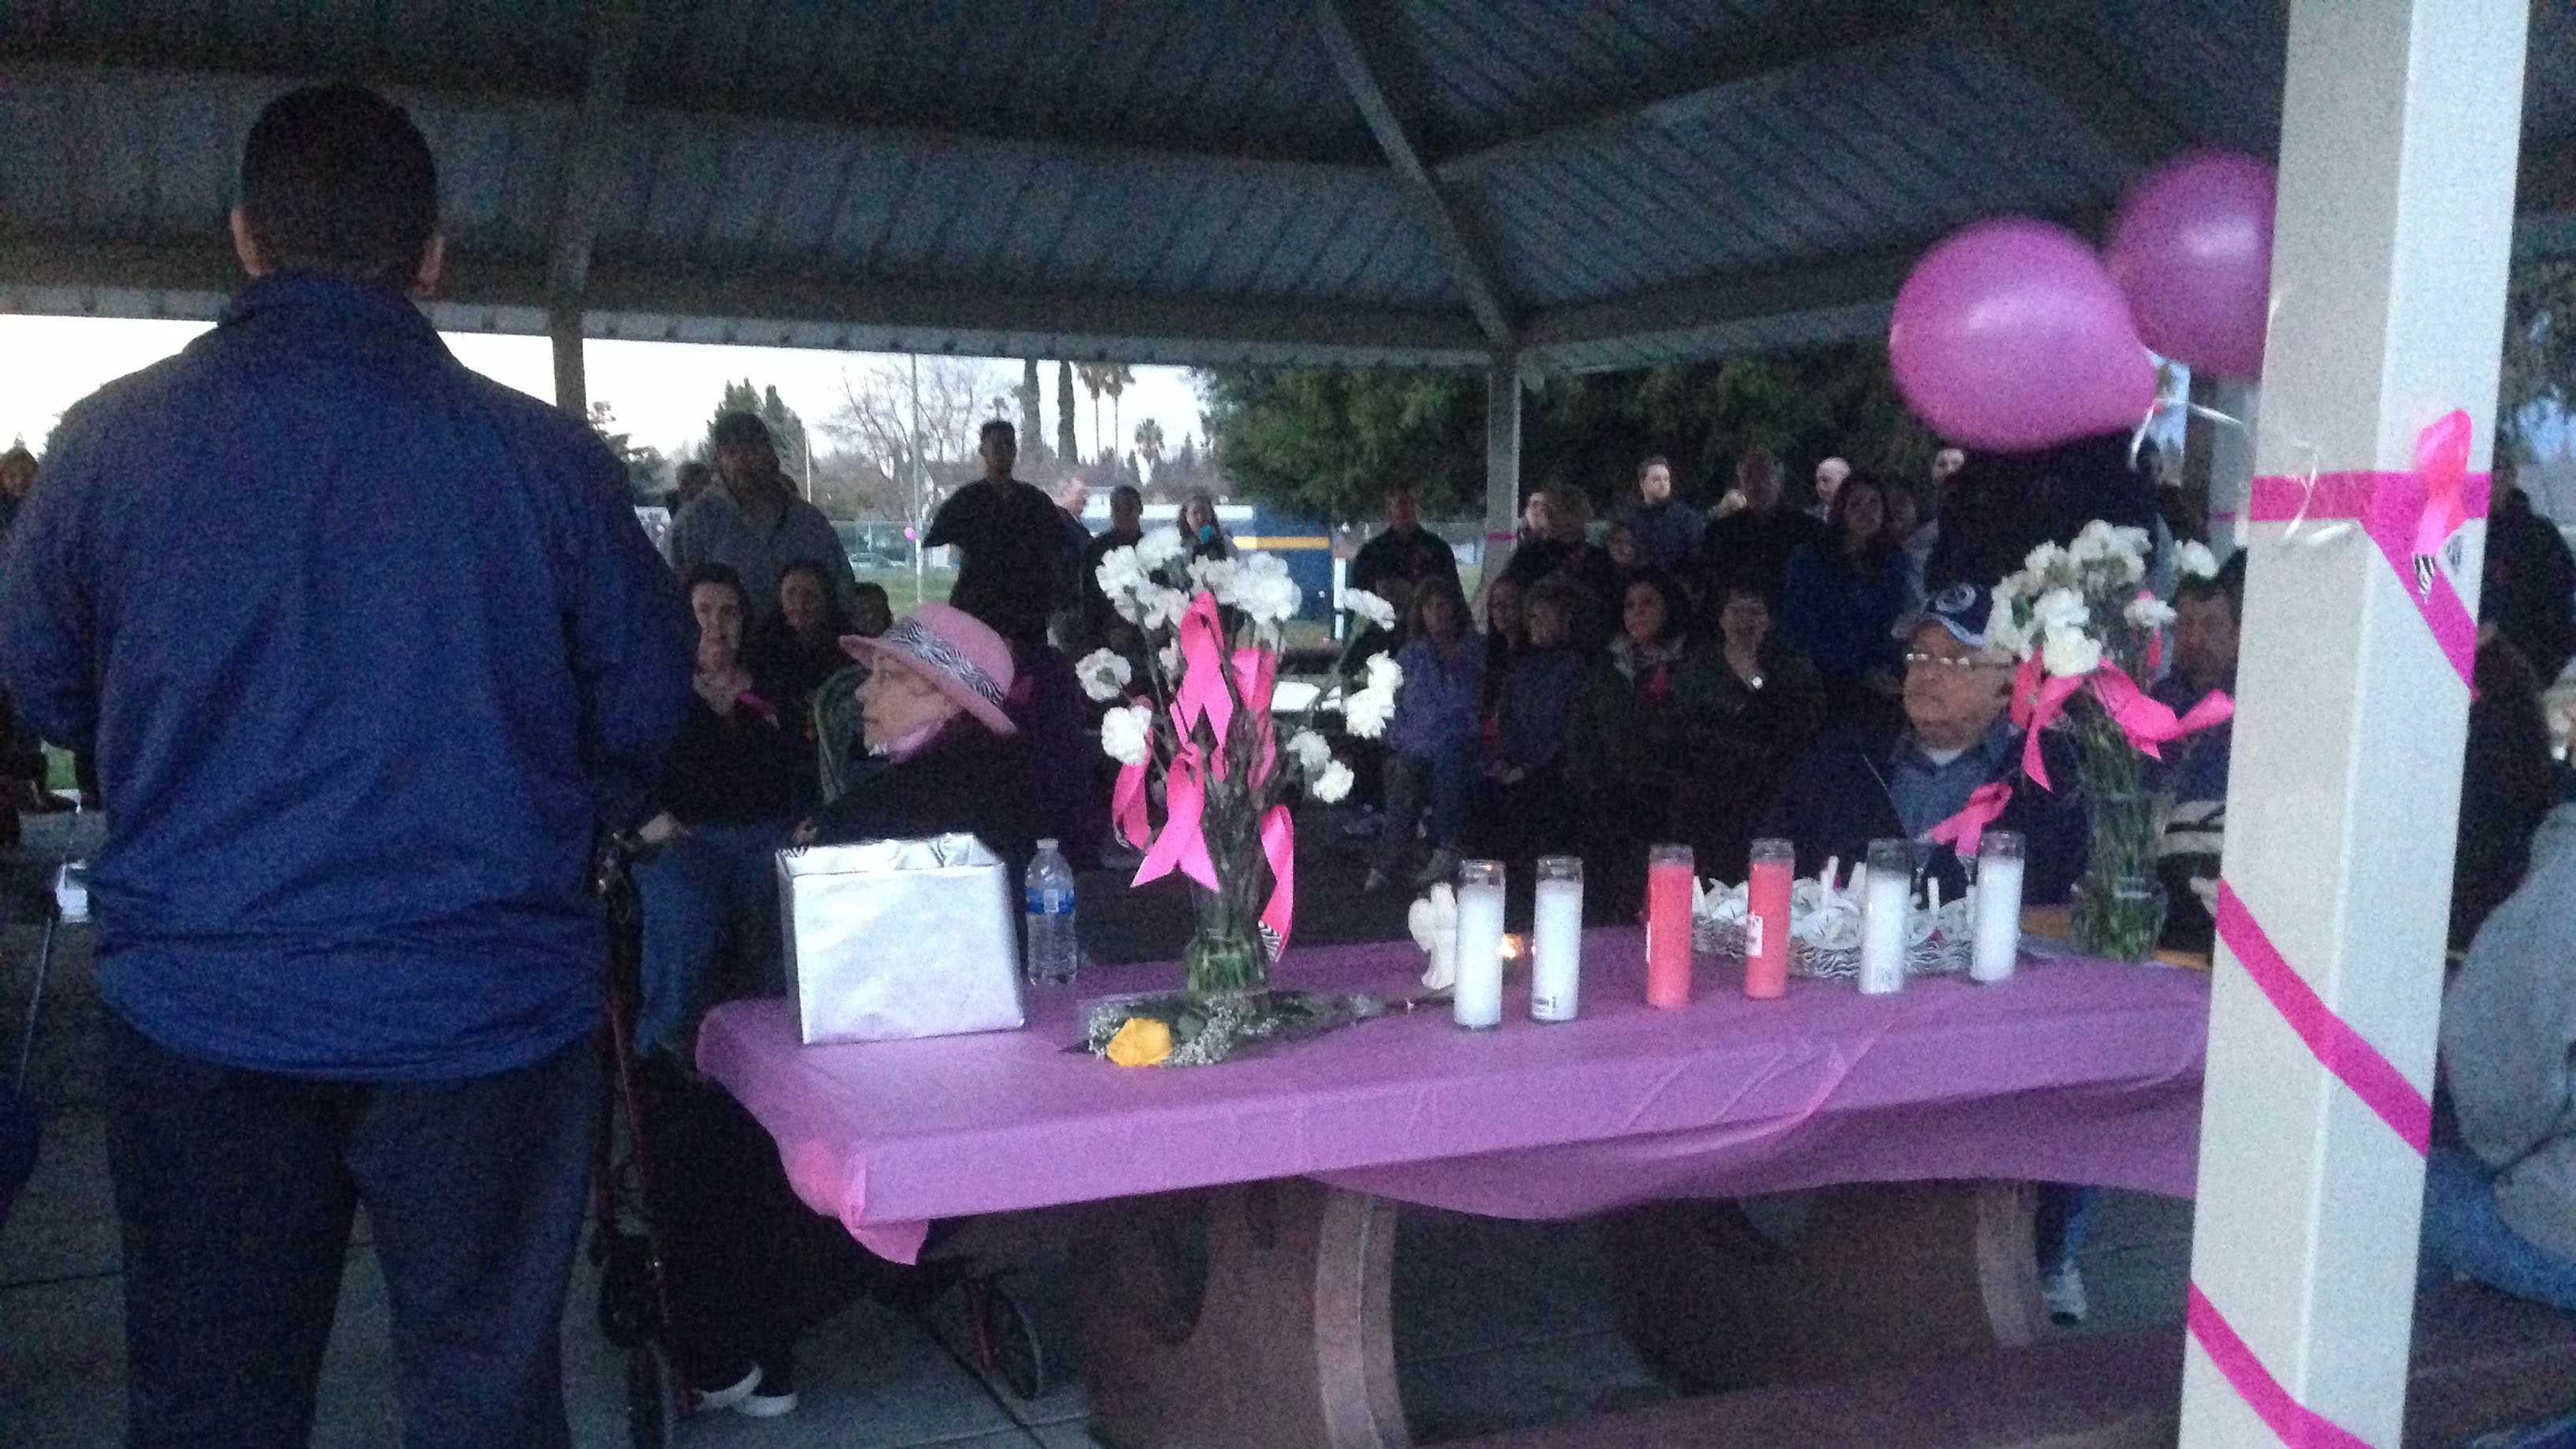 A vigil was held Thursday in memory of Jessica Funk-Haslam, 13, whose body was found one year ago at Rosemont Community Park. Police still don't know who would have killed the girl (March 7, 2013).